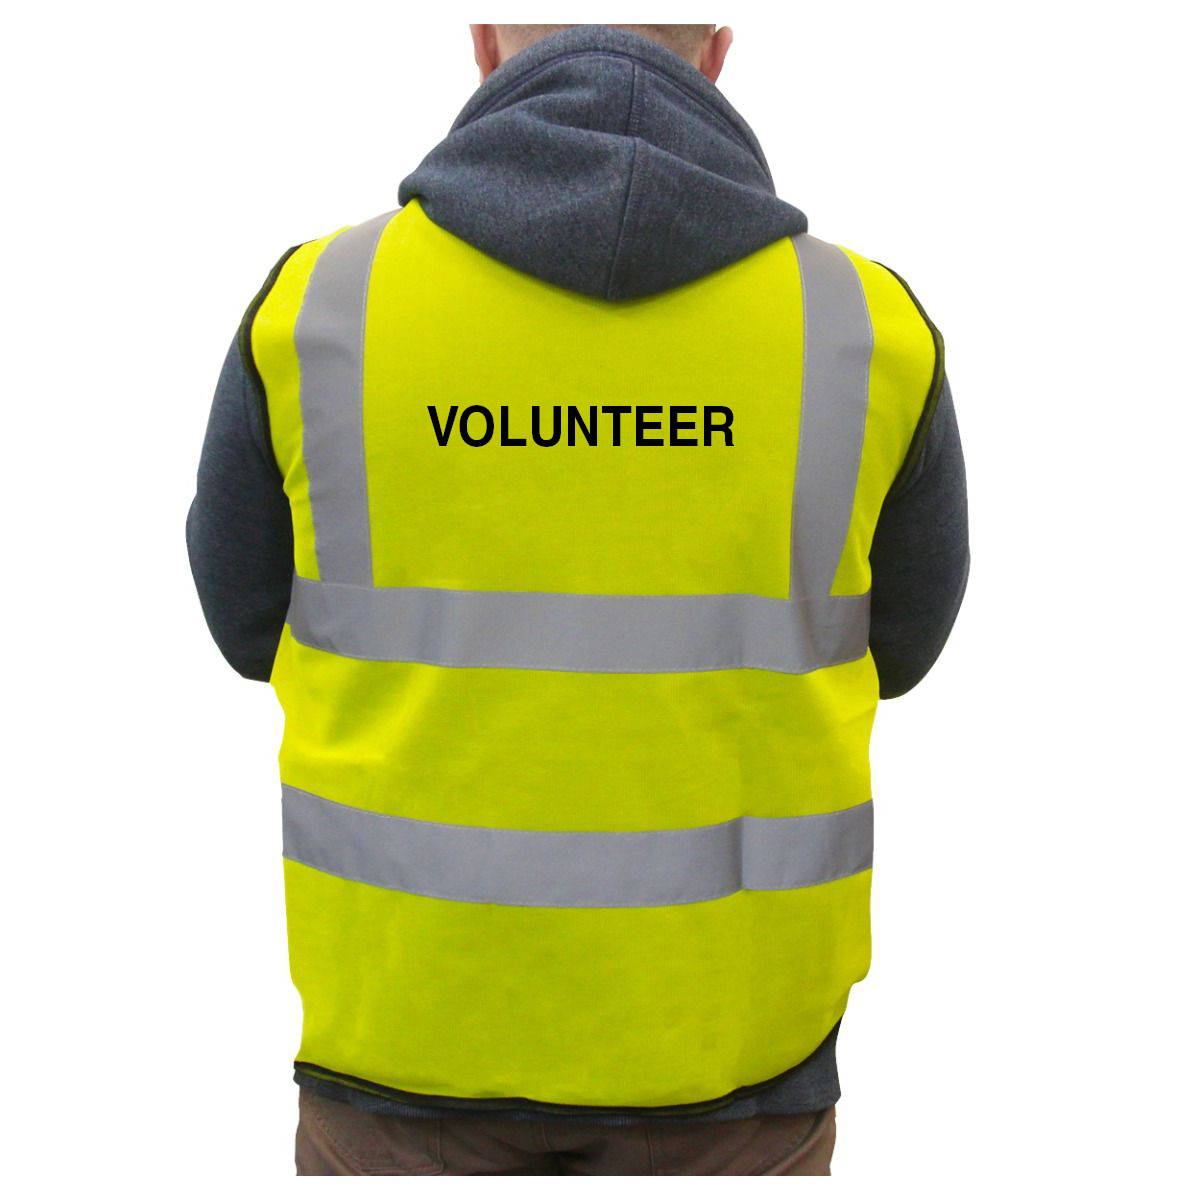 637219776773898396_hi-vis-vest-back_volunteer.jpg